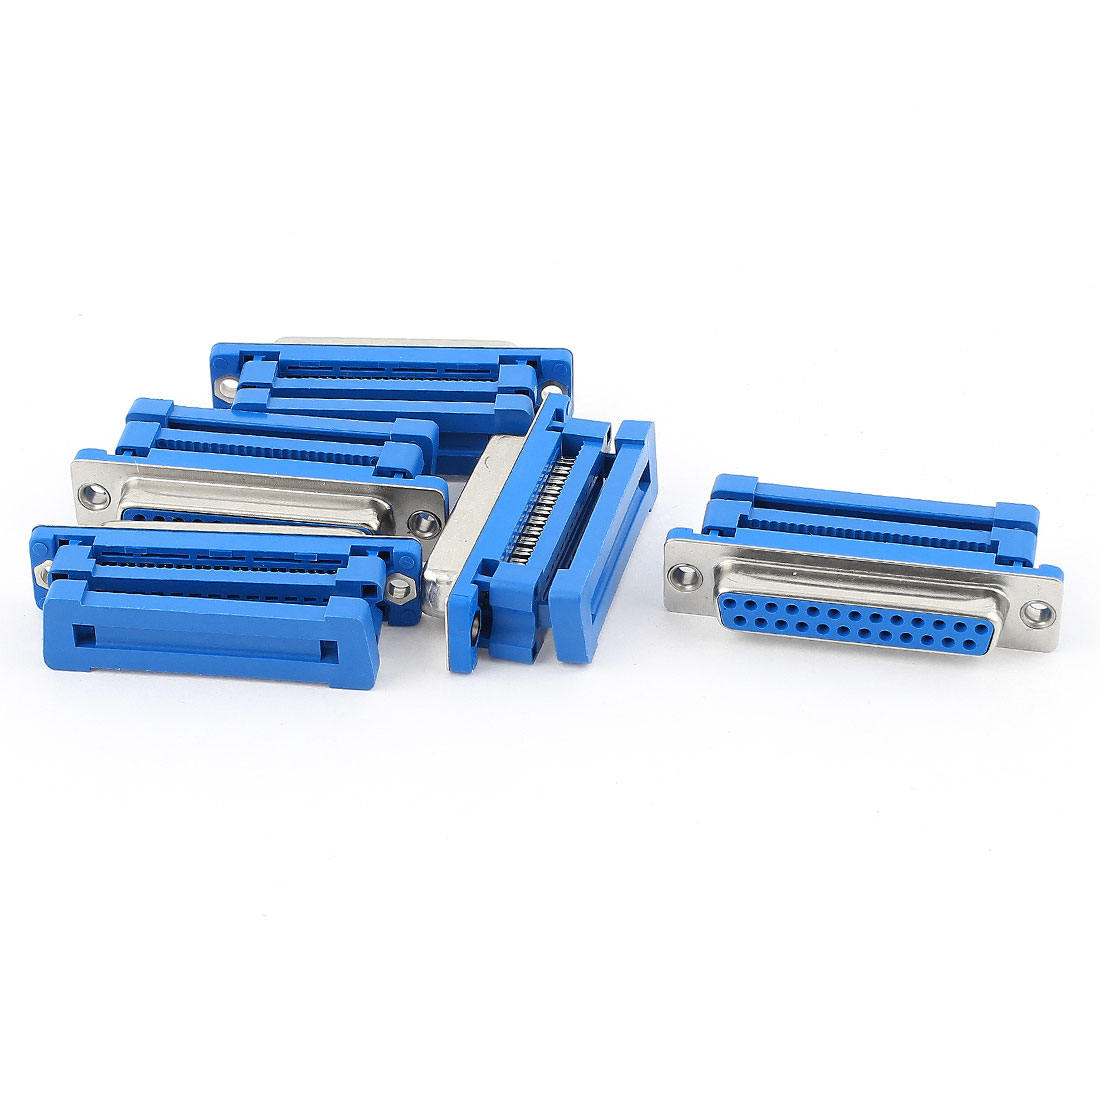 5 Pcs Parallel Port DB25 25-Pin Female IDC Connector Flat Cable Adapter